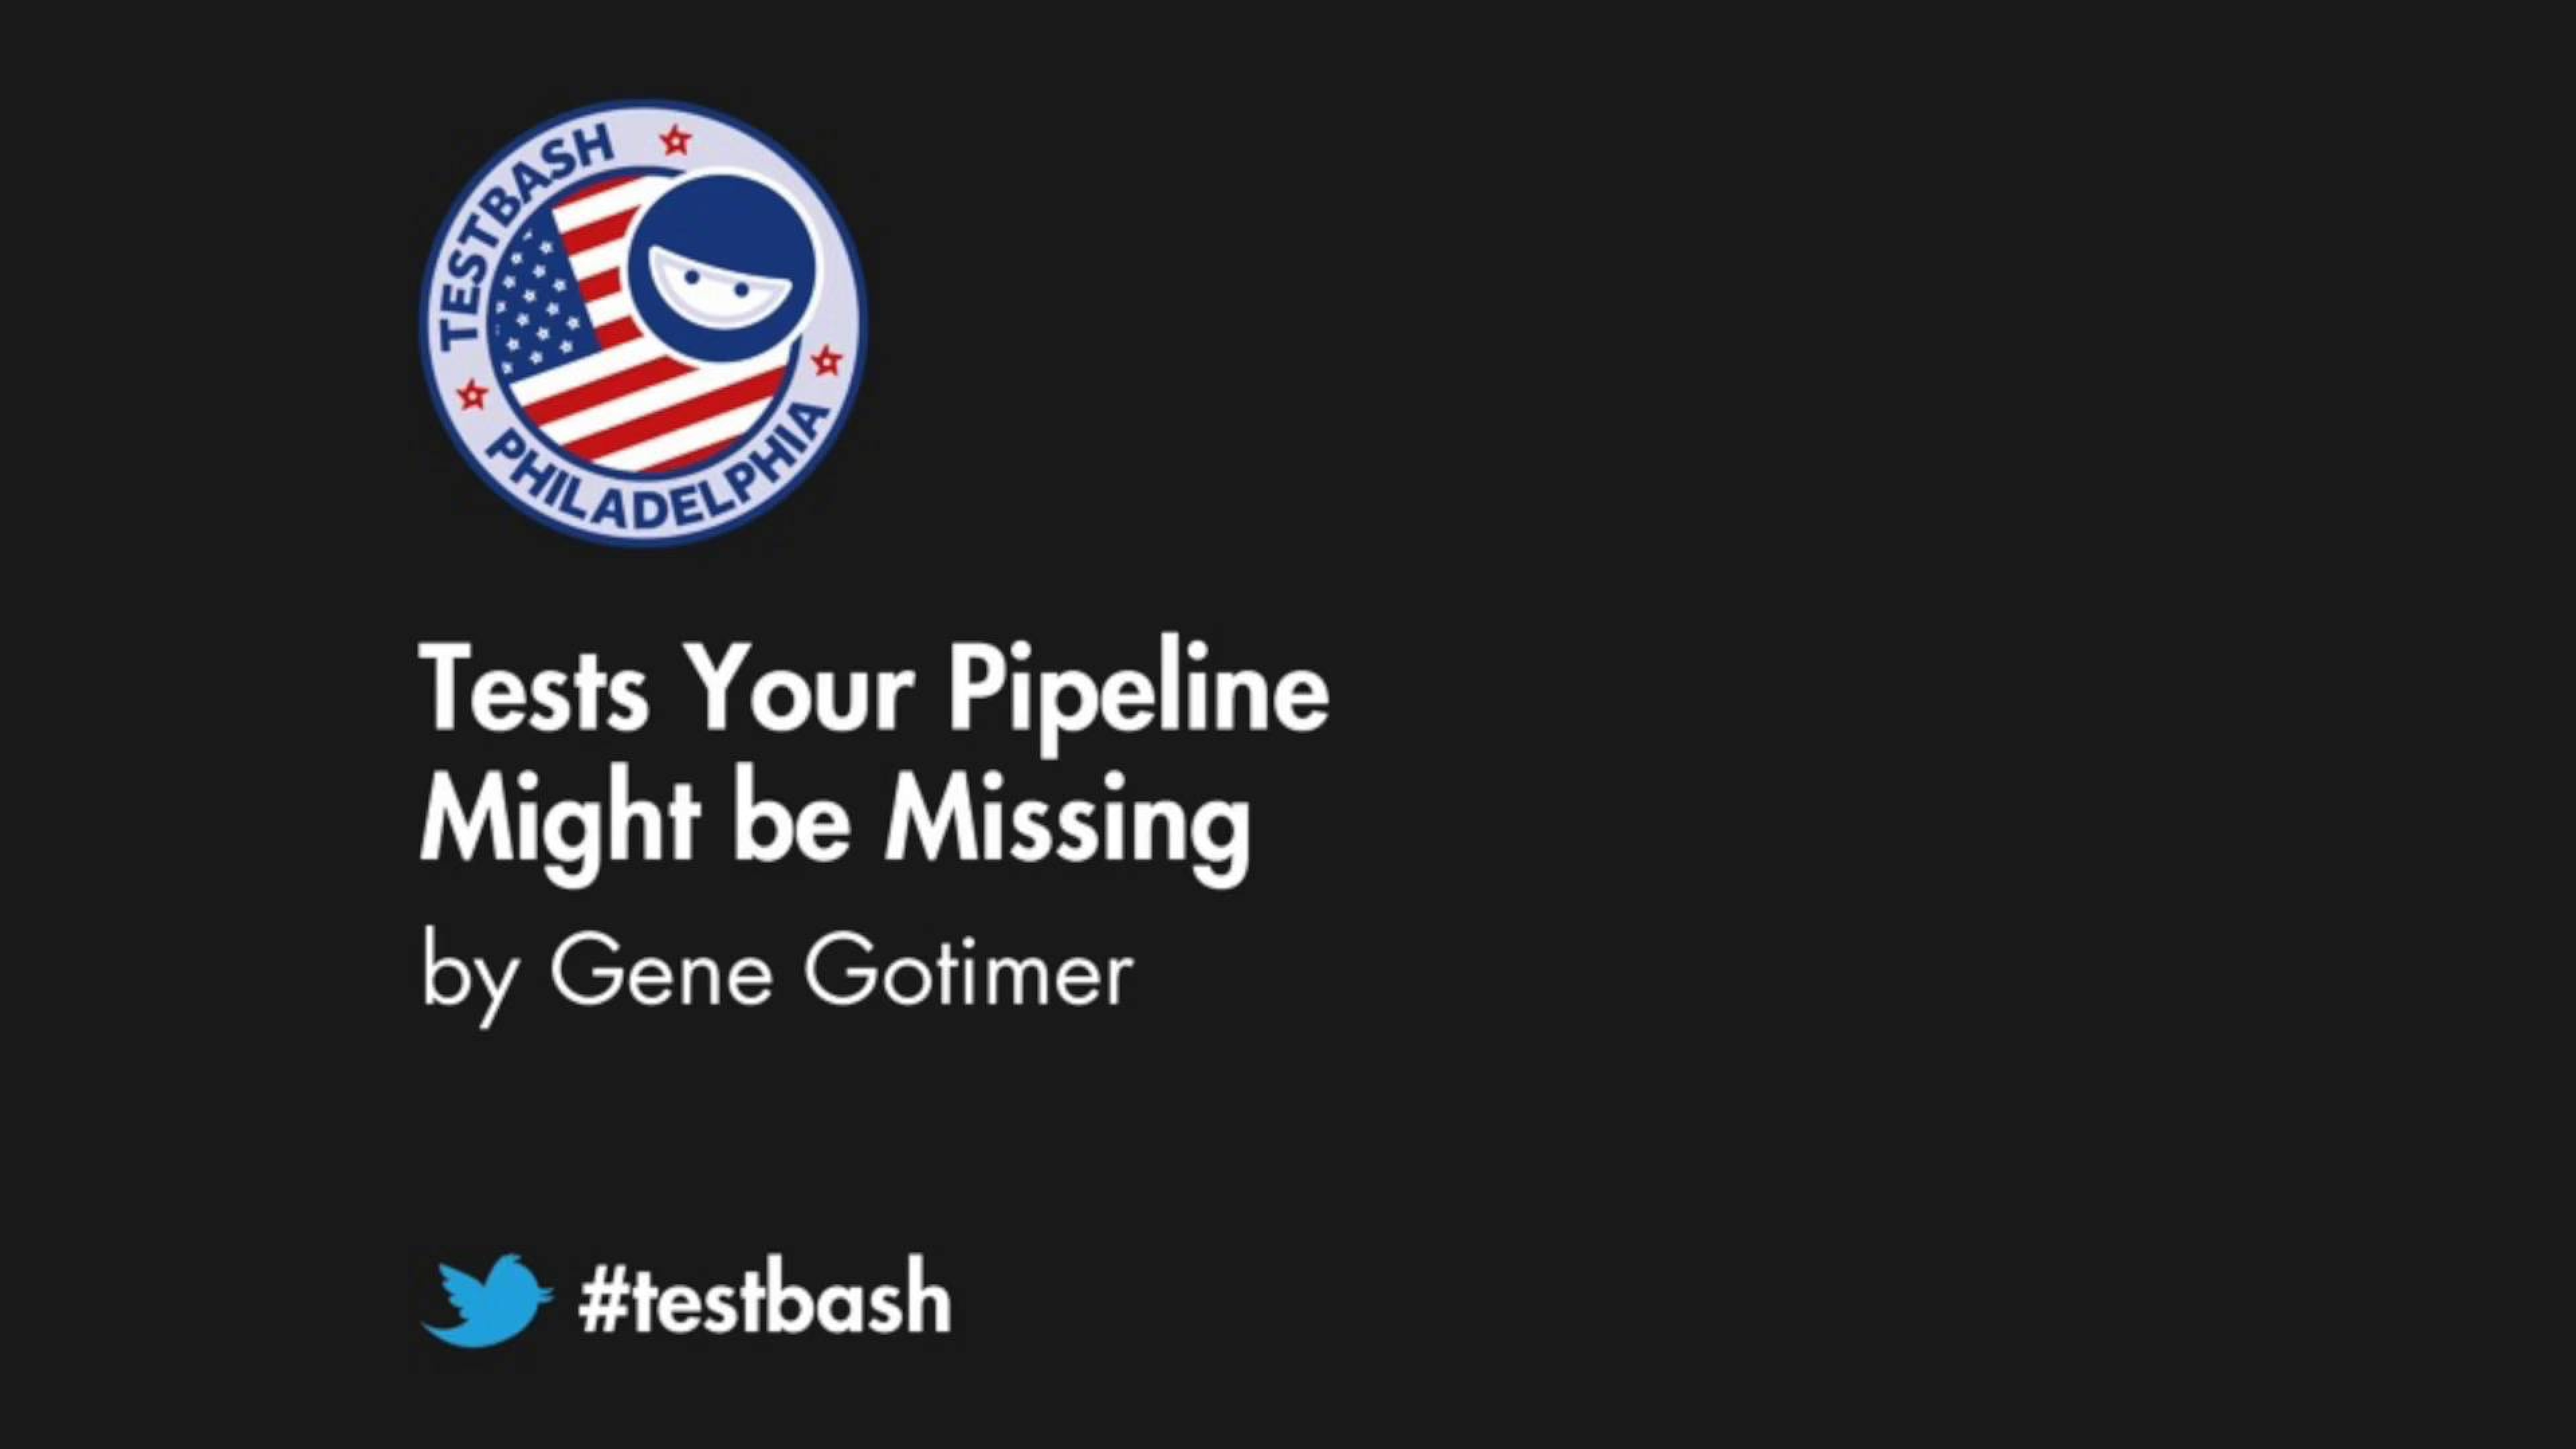 Tests Your Pipeline Might be Missing - Gene Gotimer